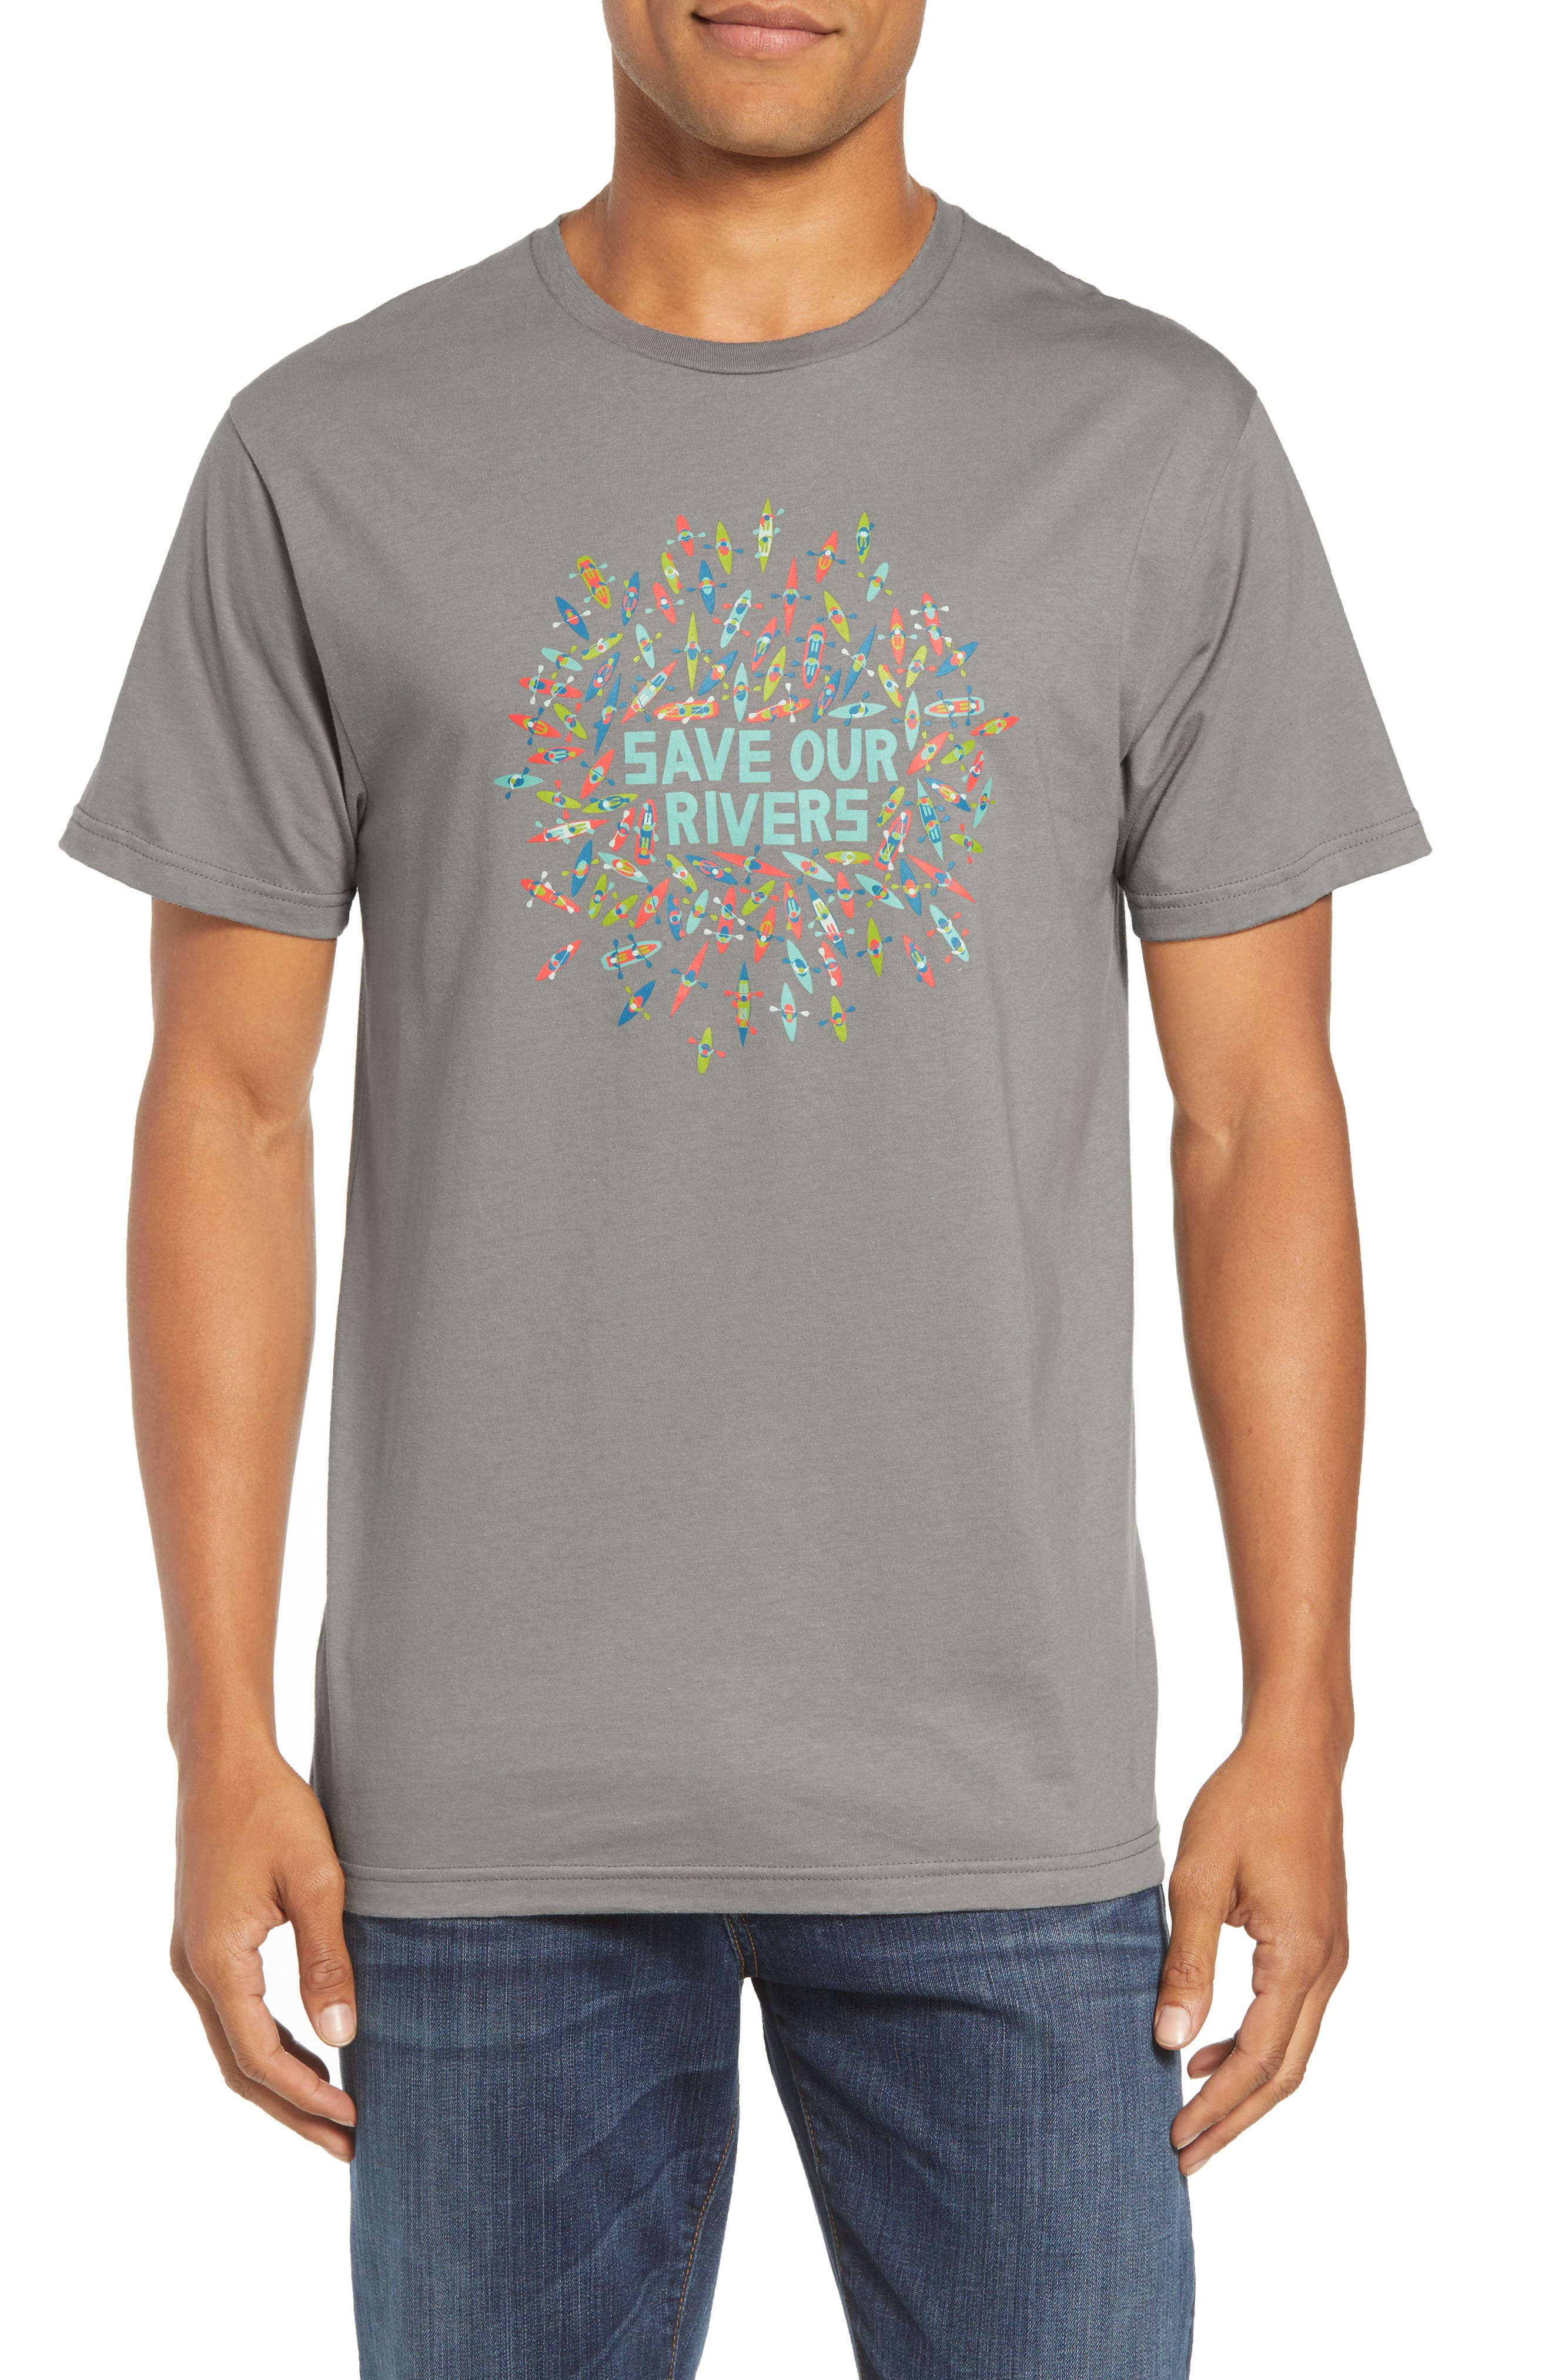 Save Our Rivers Organic Cotton Graphic T-Shirt,                             Main thumbnail 1, color,                             FEATHER GREY